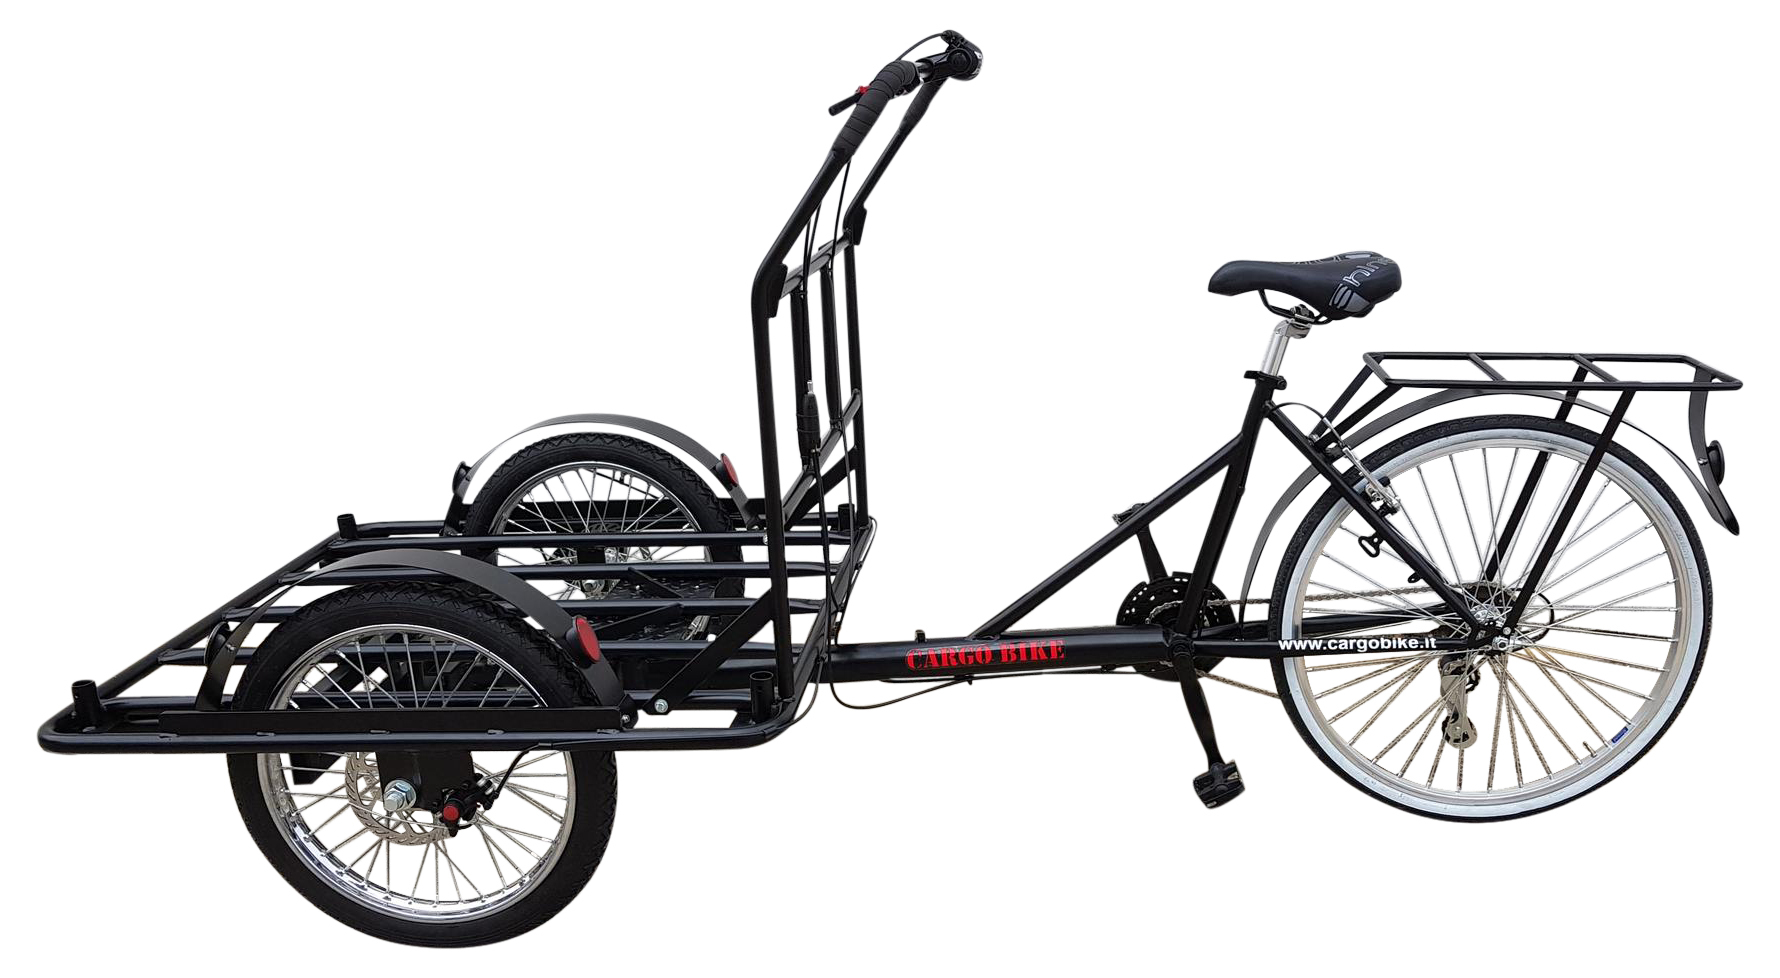 NORDIK_HEAVY_DUTY_CARGO_BIKE_ITALIANA_ITALY_1